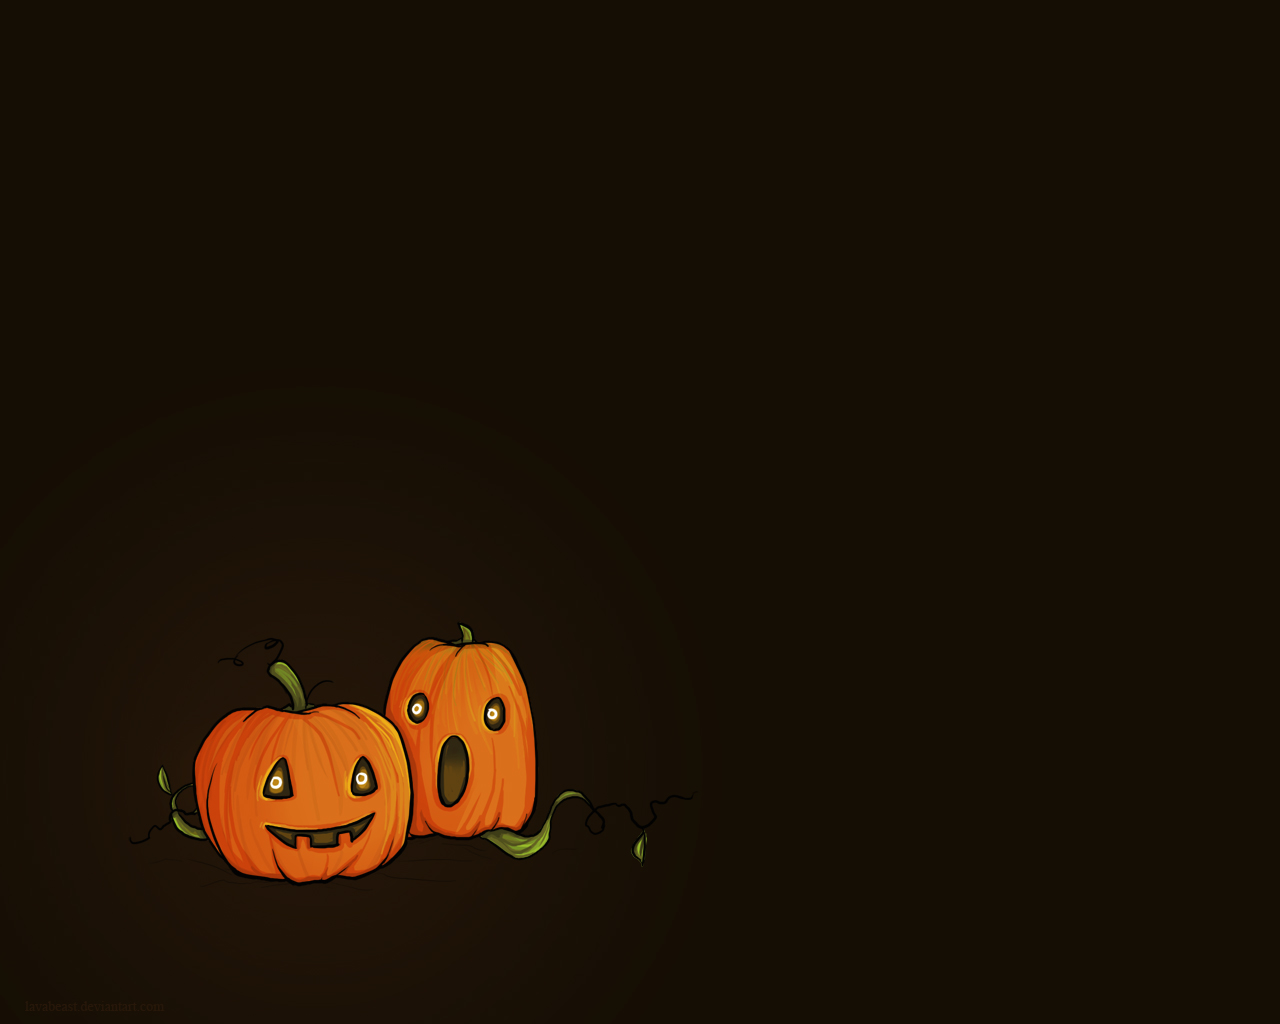 Cute Halloween Pumpkins Wallpaper